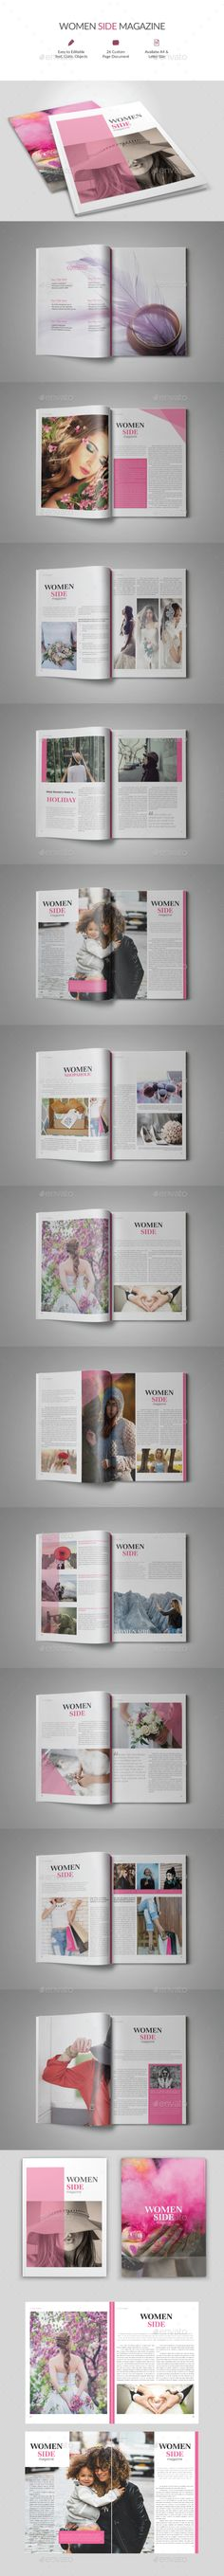 Women Side Magazine Template InDesign INDD - 26 Pages